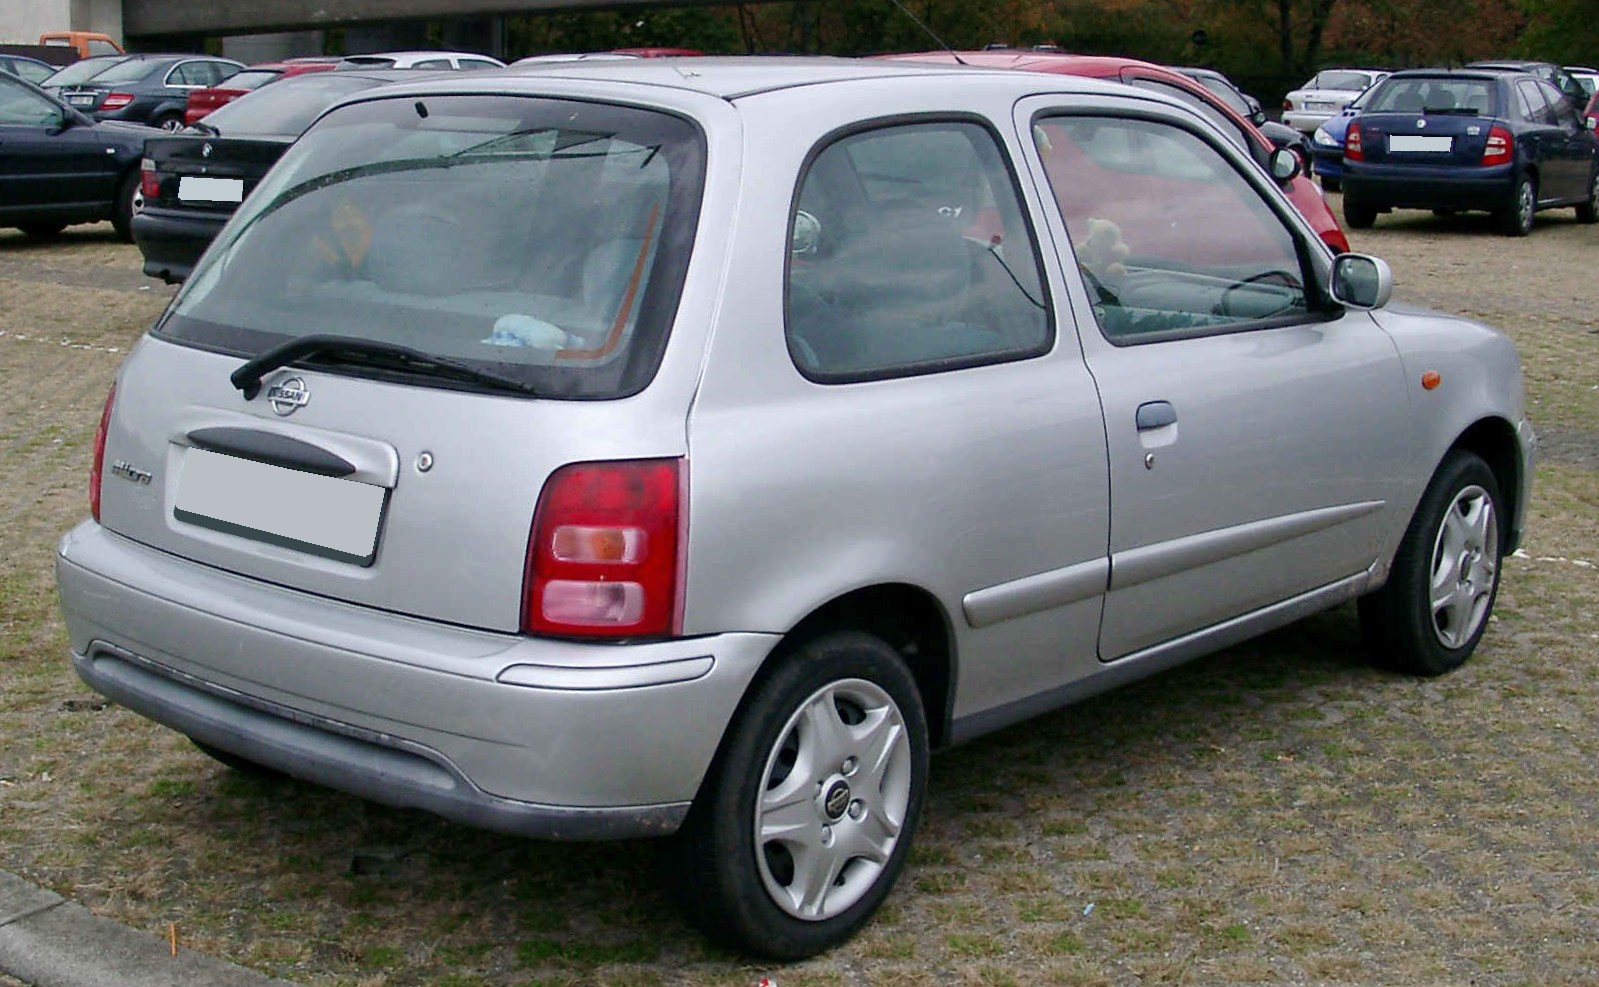 File:Nissan Micra rear 20081017.jpg - Wikimedia Commons